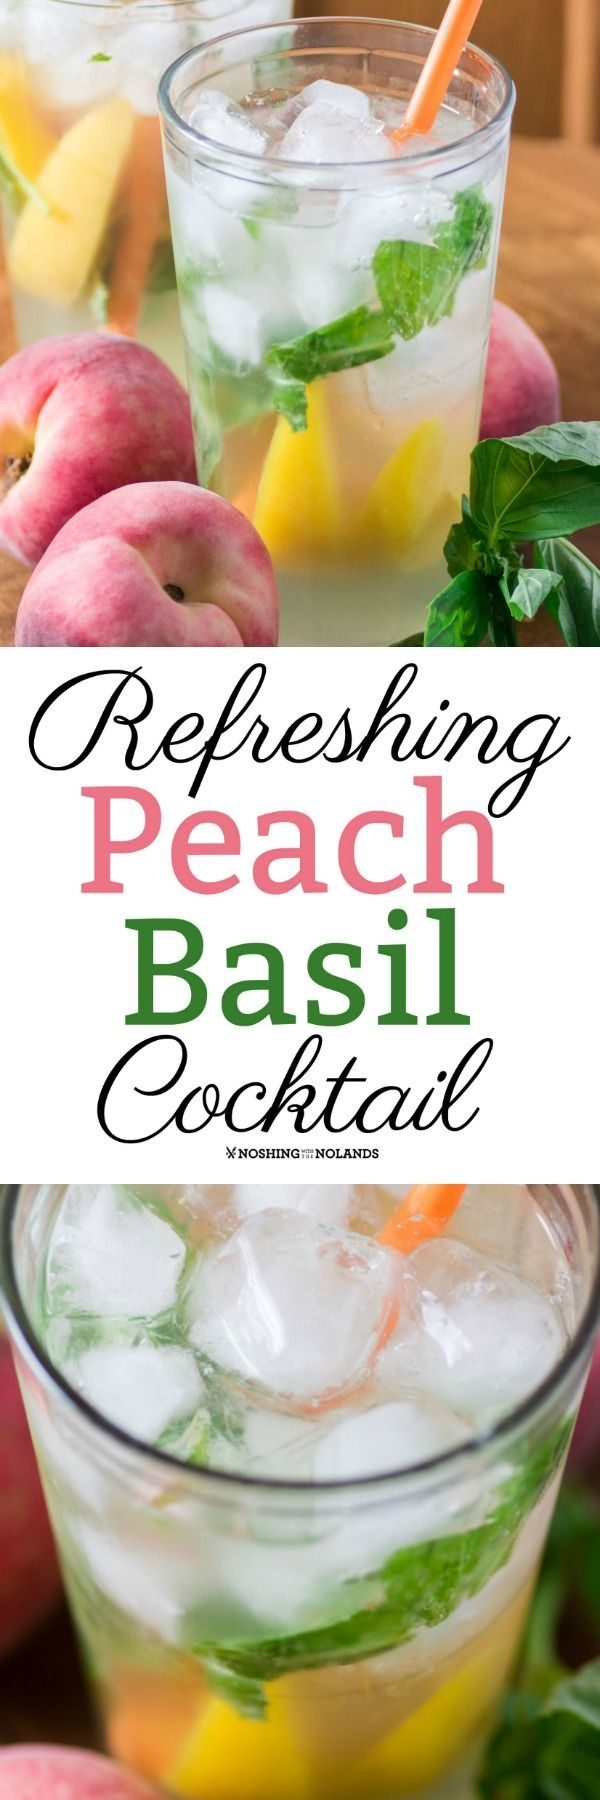 Refreshing Peach Basil Cocktail by Noshing With The Nolands is the perfect porch sipper on a hot summer day!